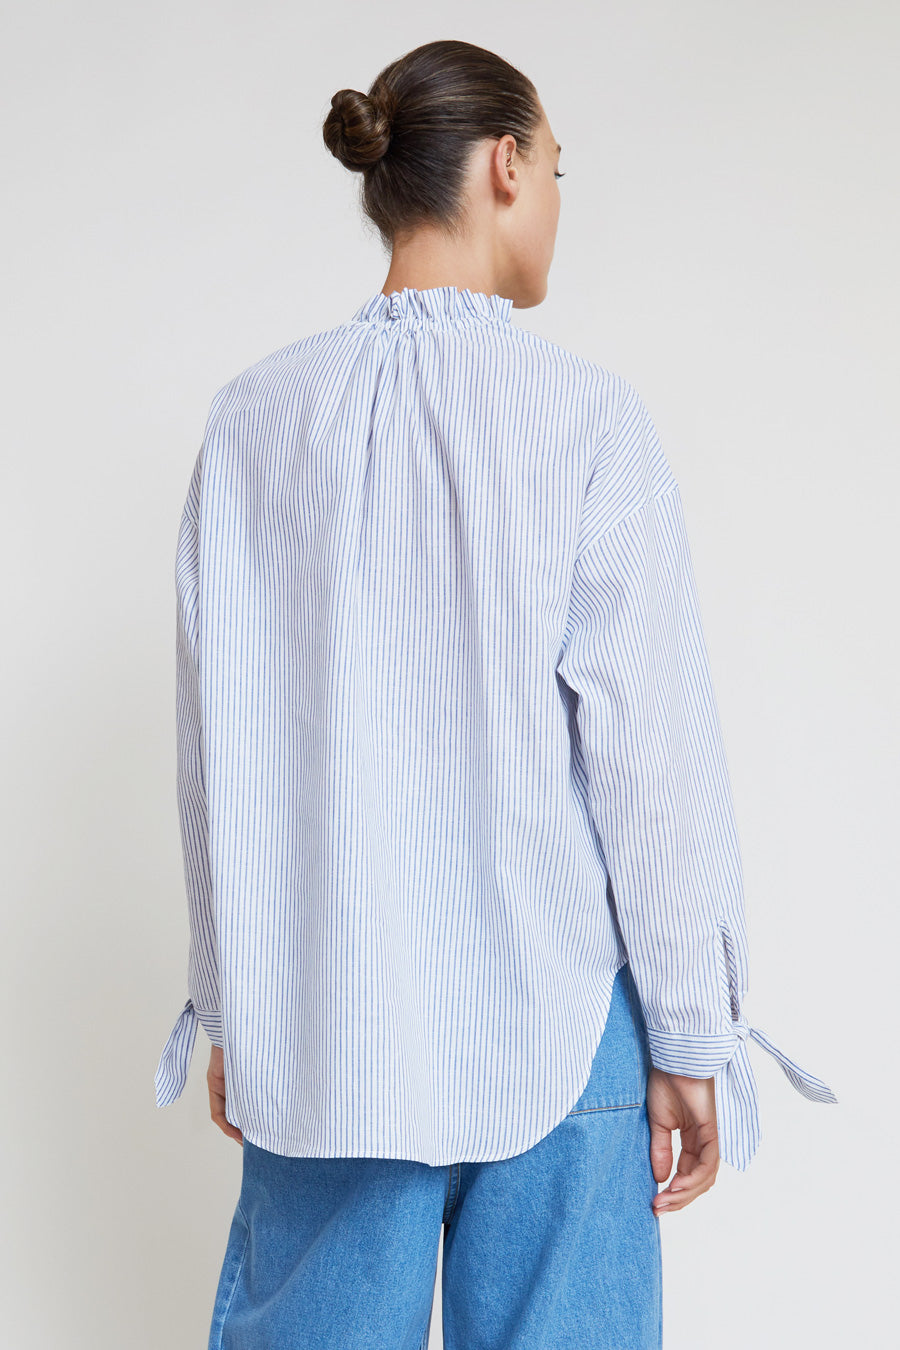 Belize Nika Shirt in Ticking Stripe